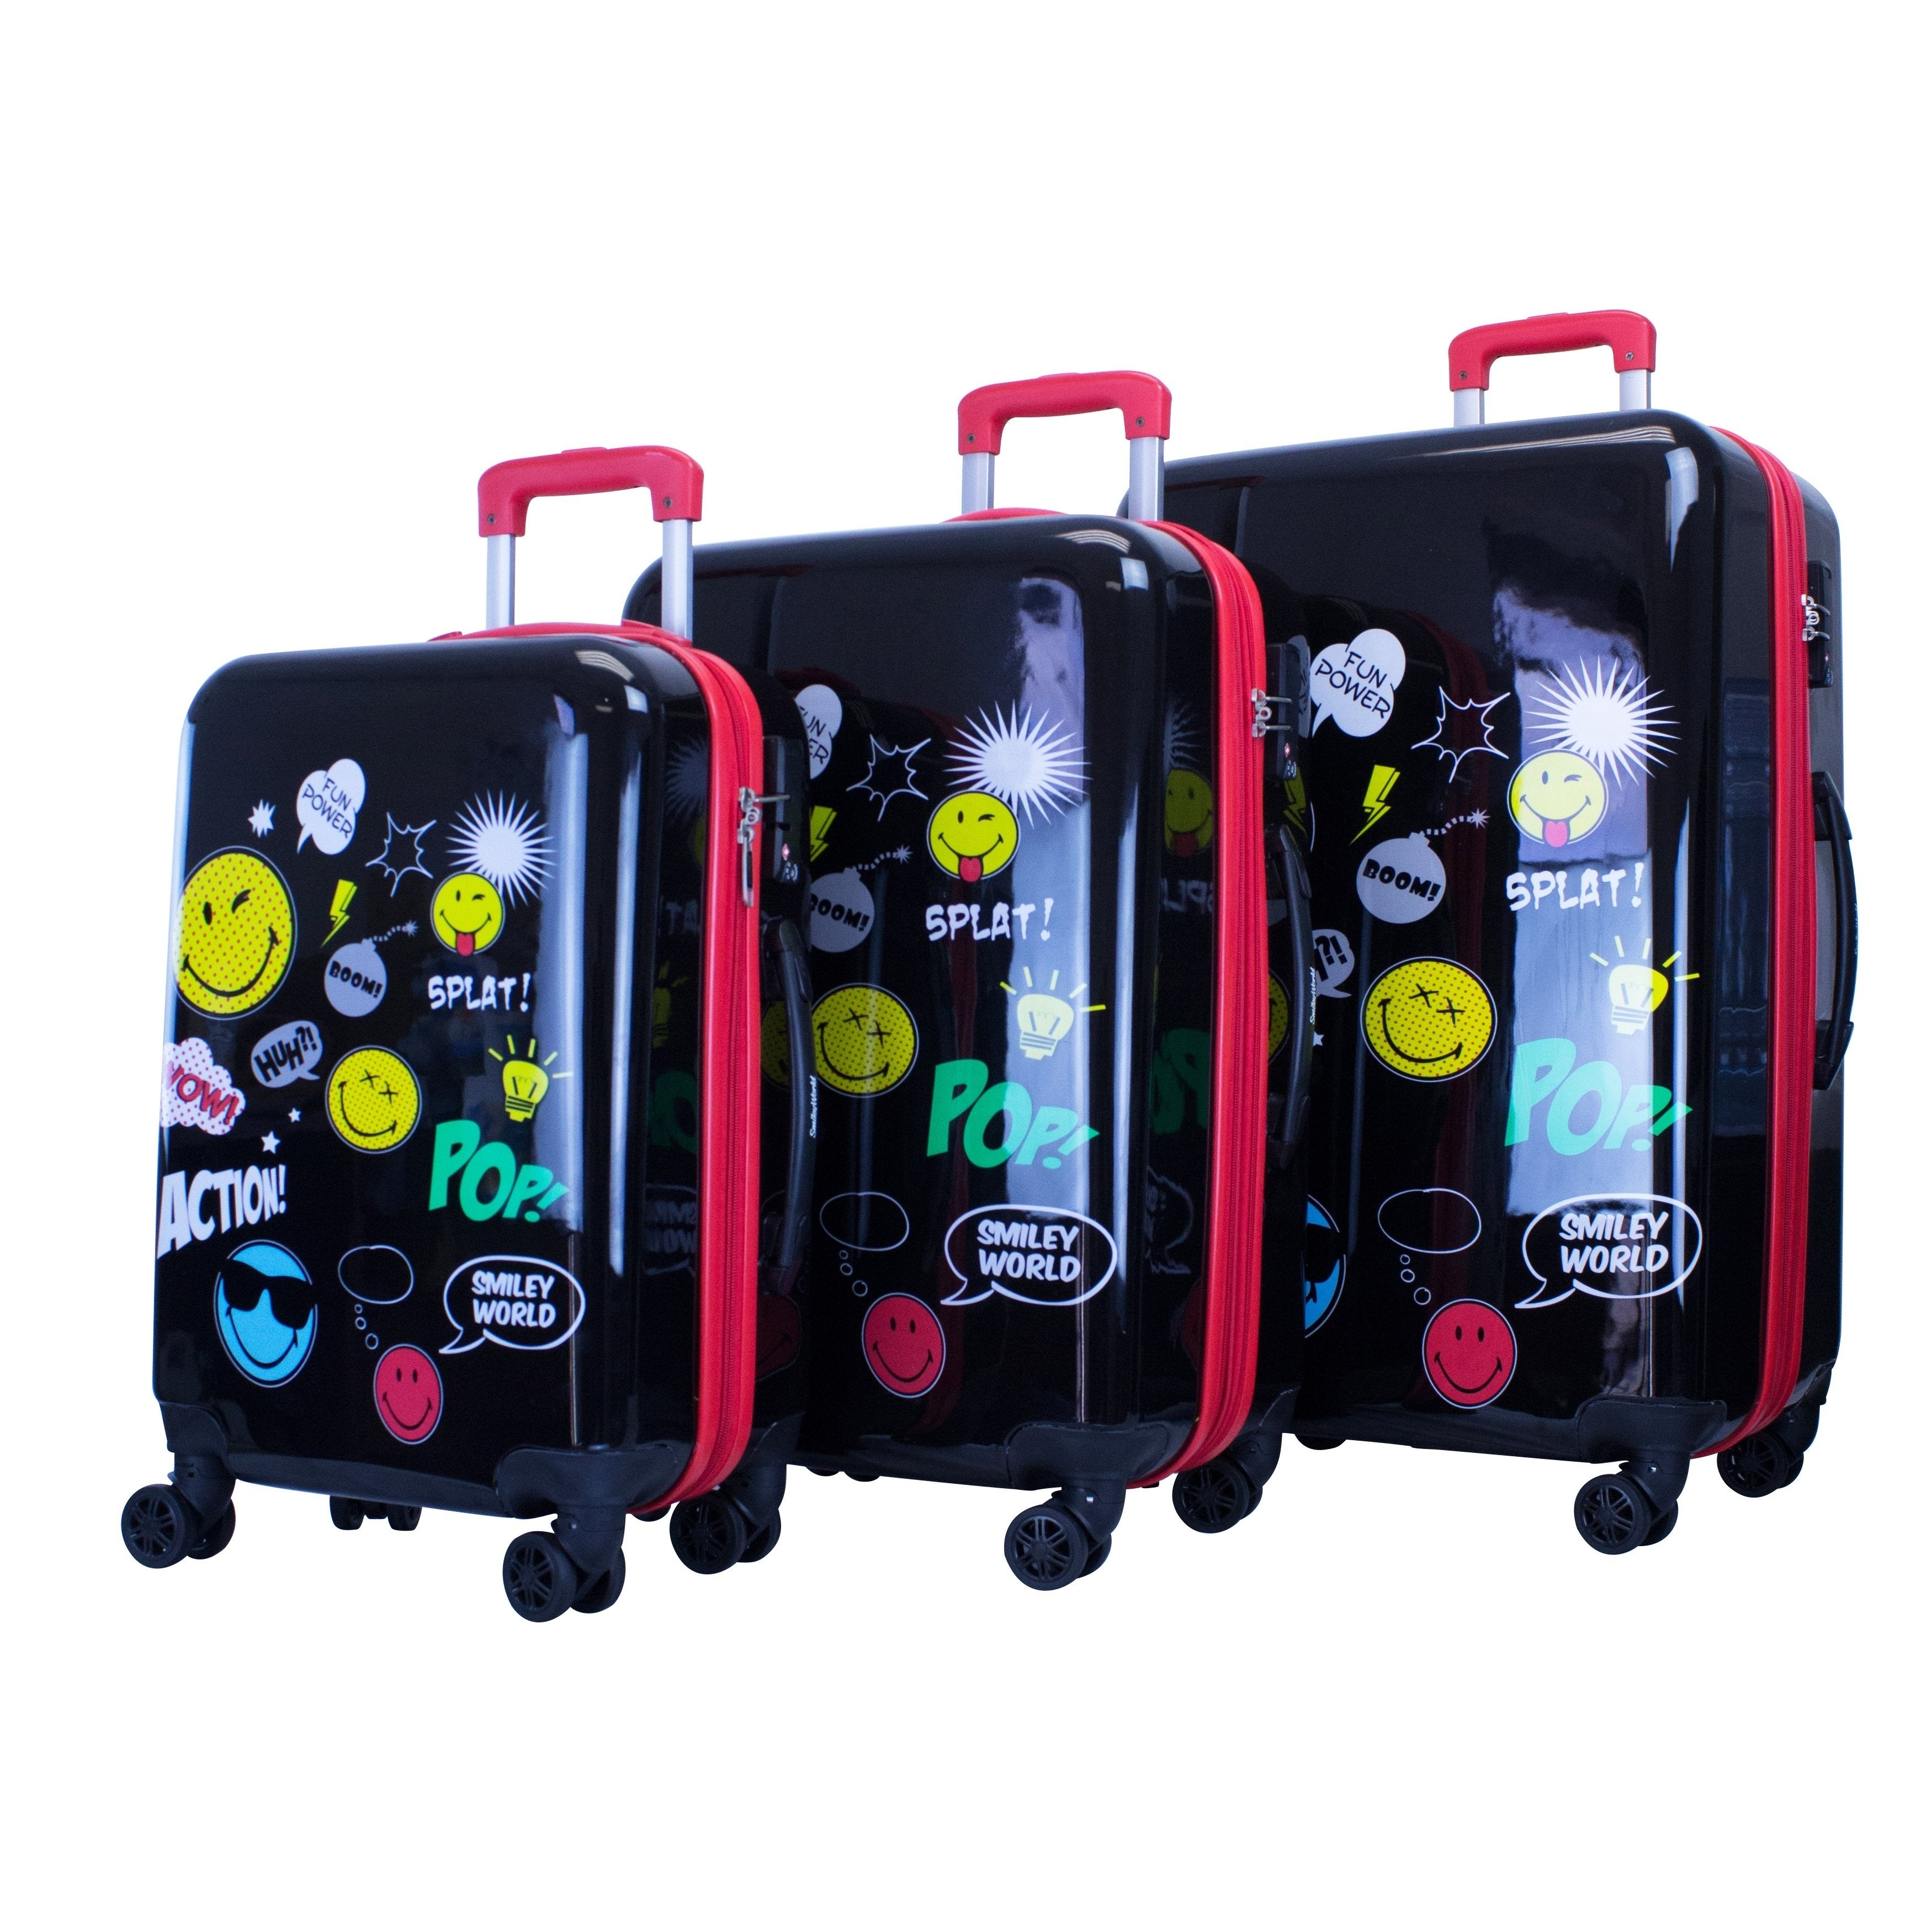 9b01c10bffcd Luggage Sets - Clearance & Liquidation | Find Great Luggage Deals ...